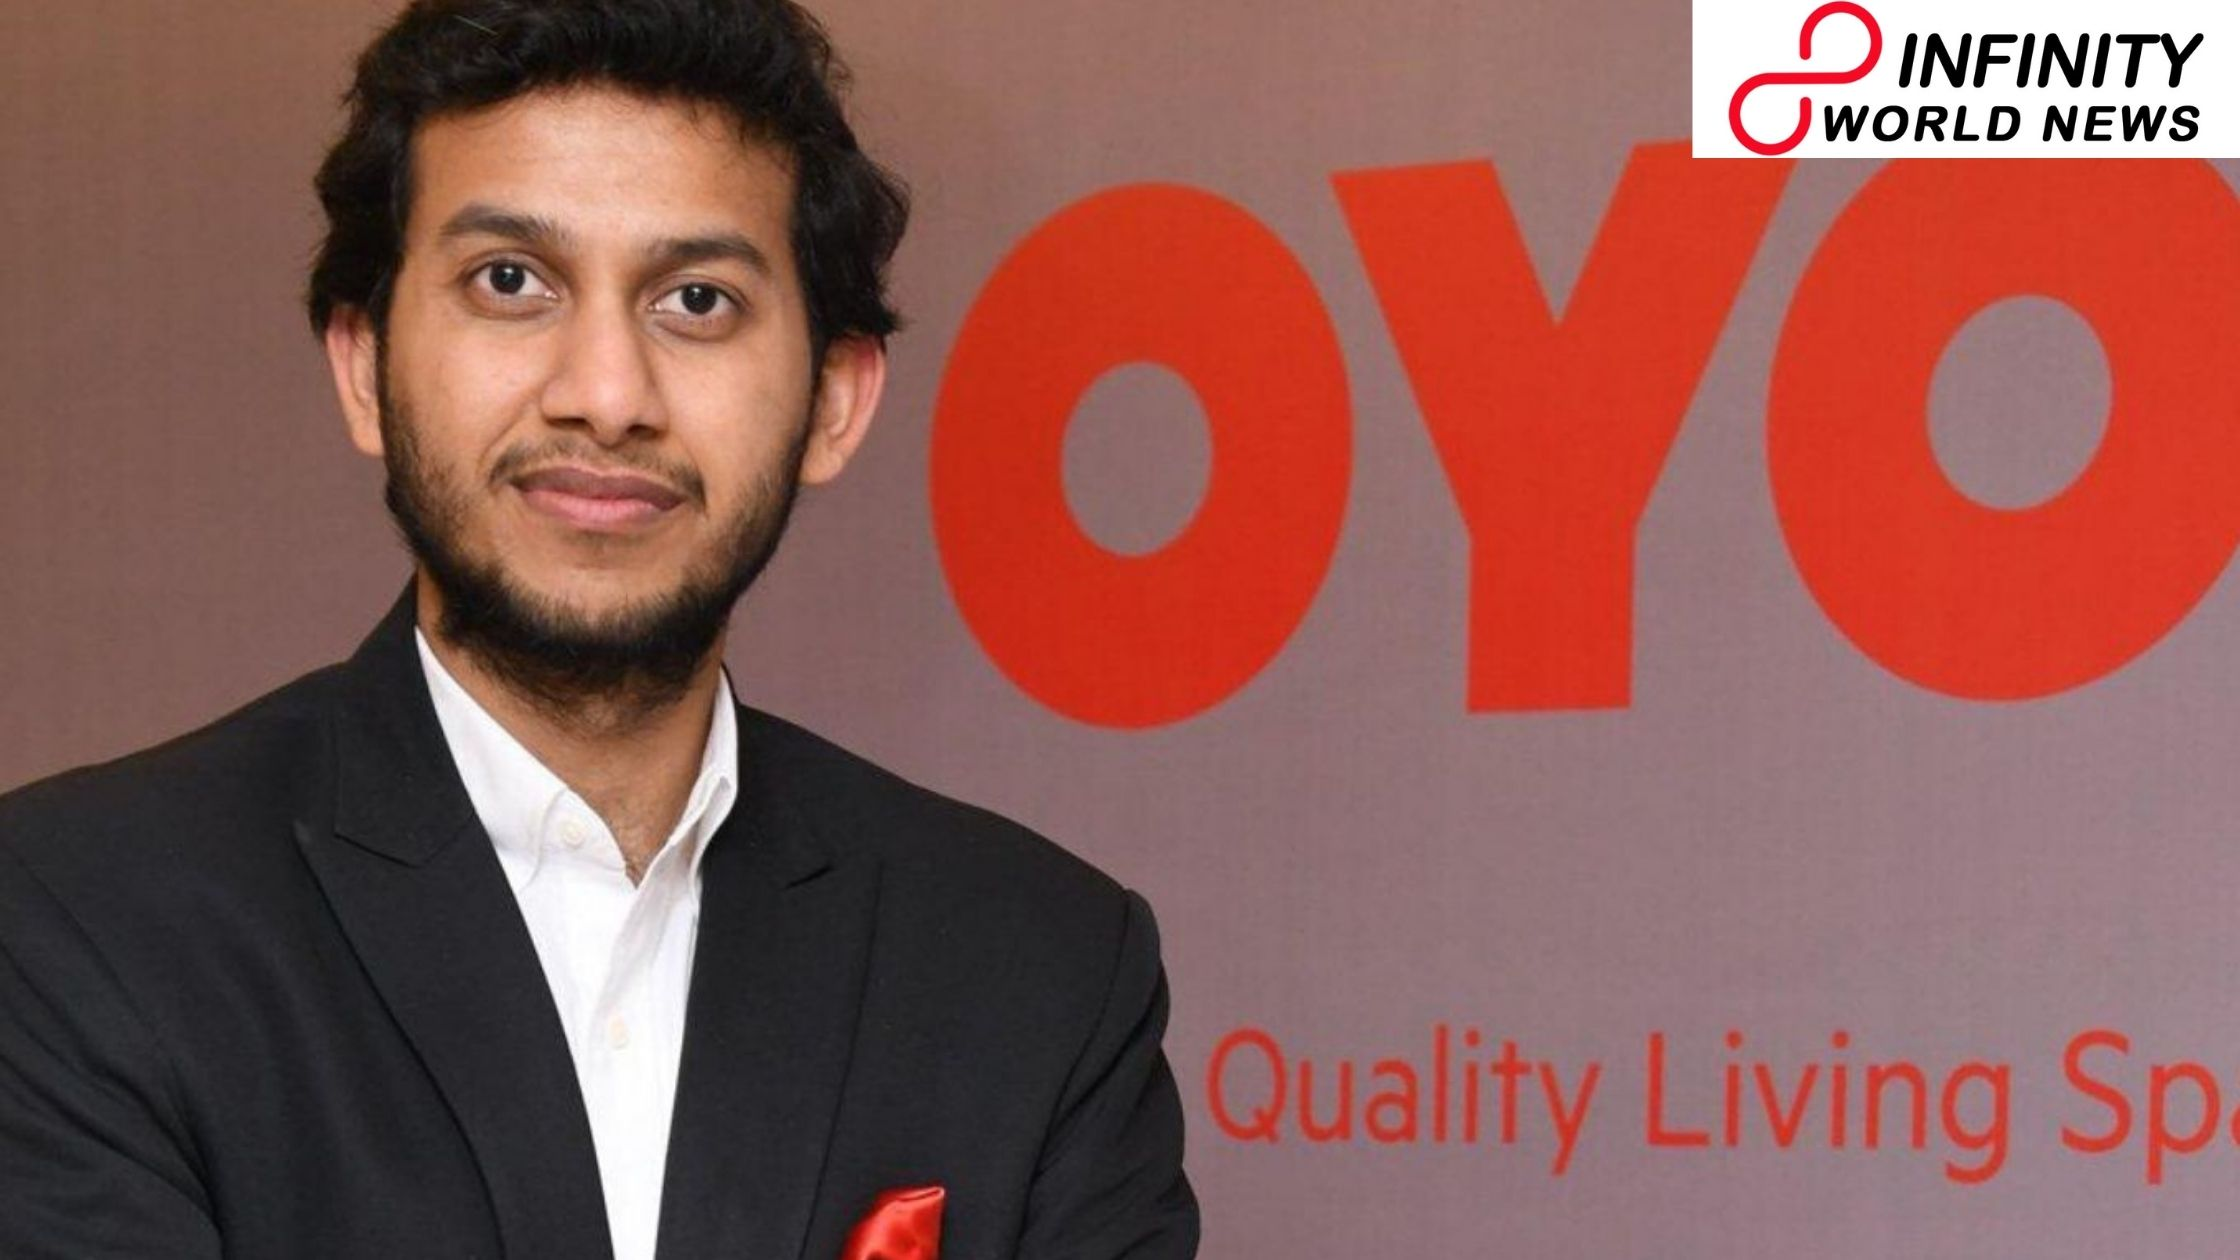 Ritesh Agarwal World s Second Youngest Billionaire after Kylie Jenner